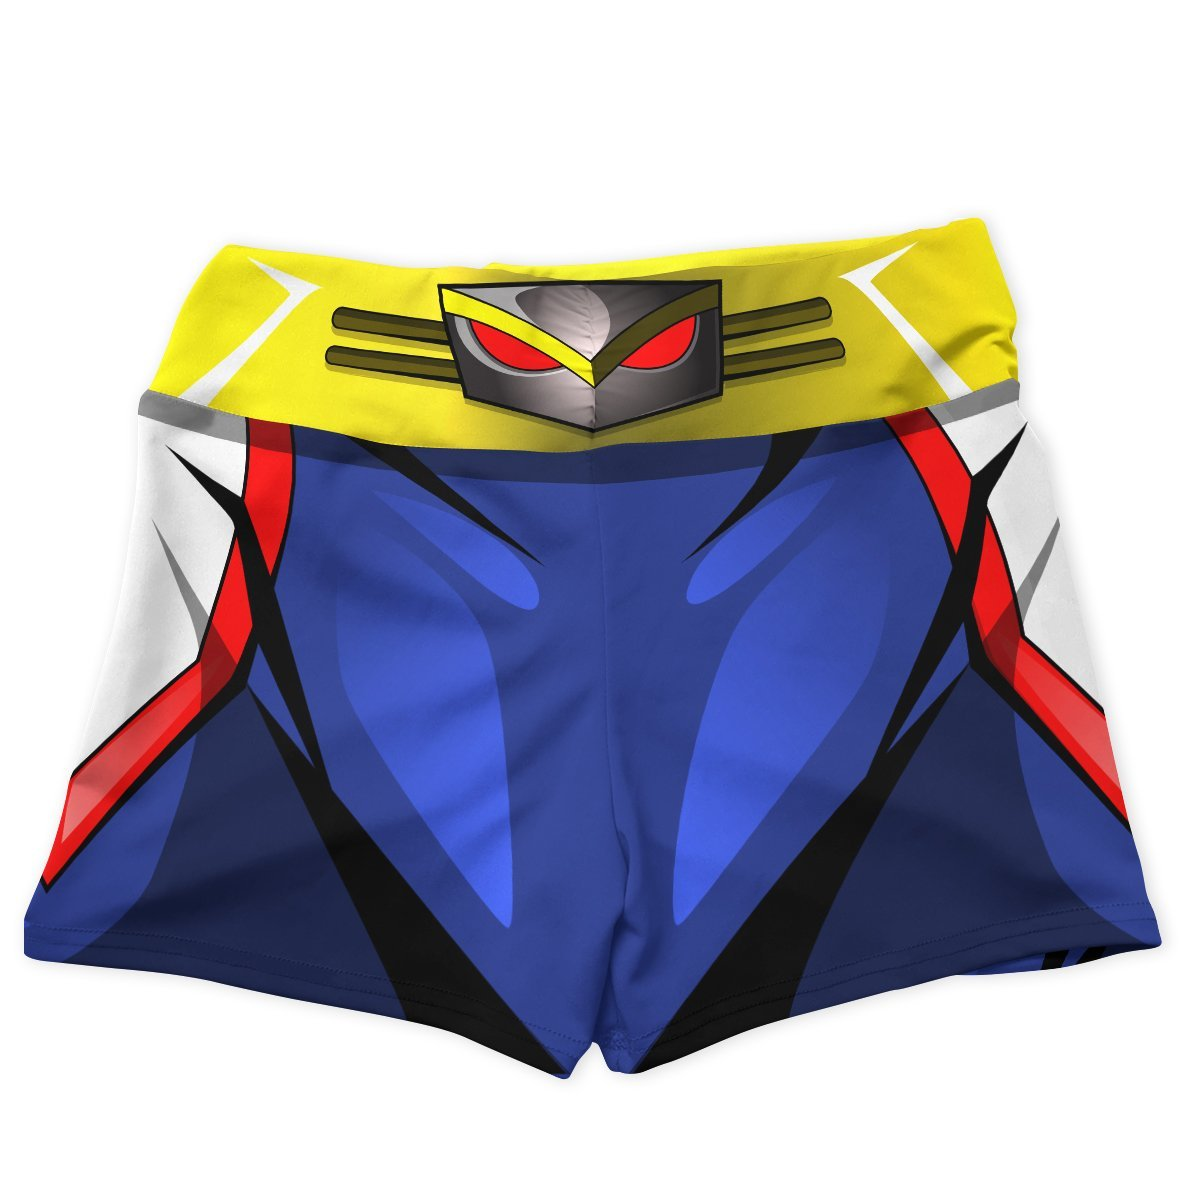 ua high all might active wear set 743227 - Anime Swimsuits